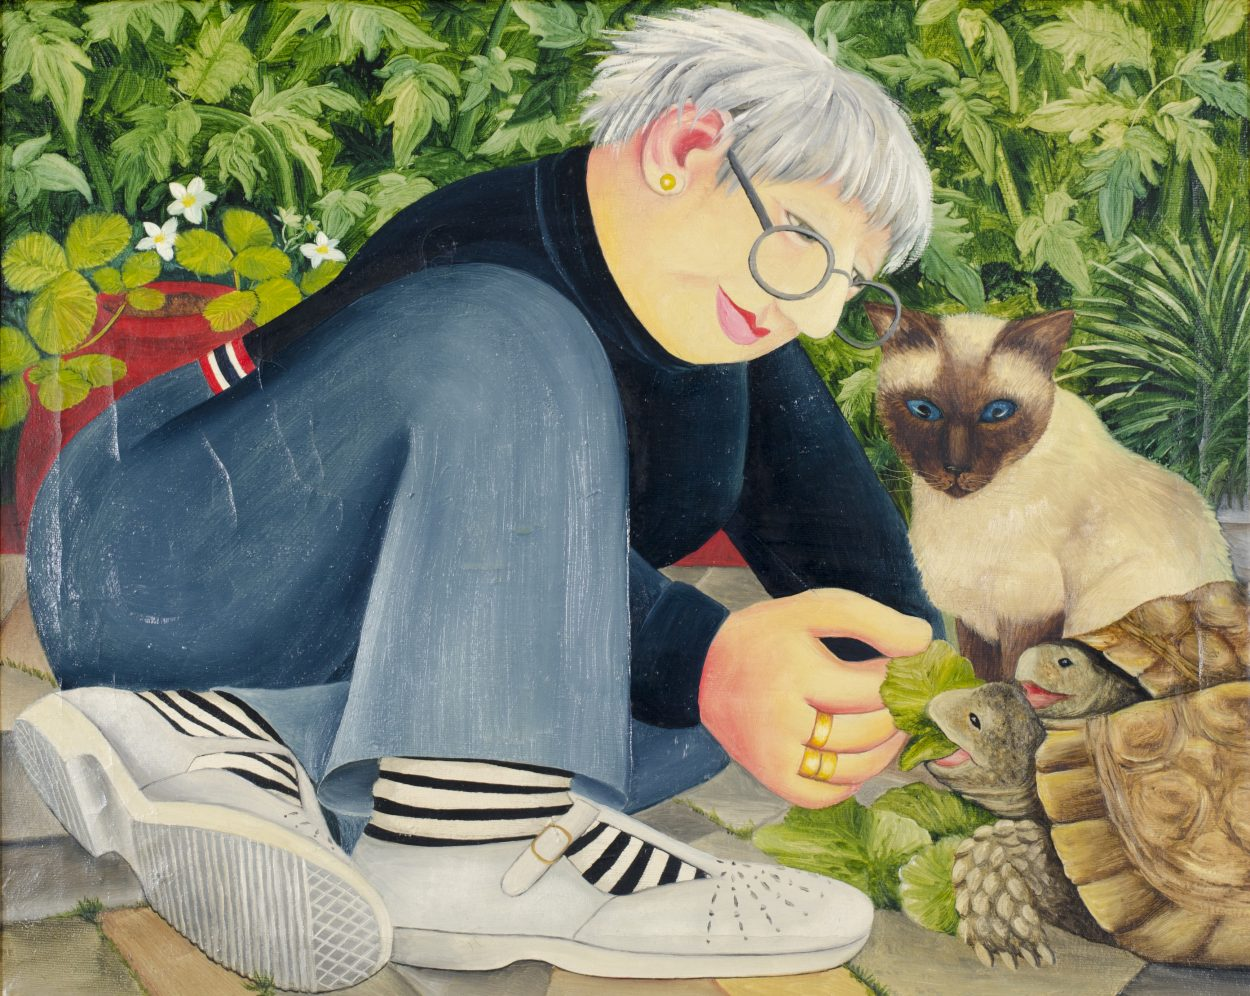 Beryl-Cook-Feeding-the-Tortoise-with-Siamese-Cat-Looking-On-1250x996